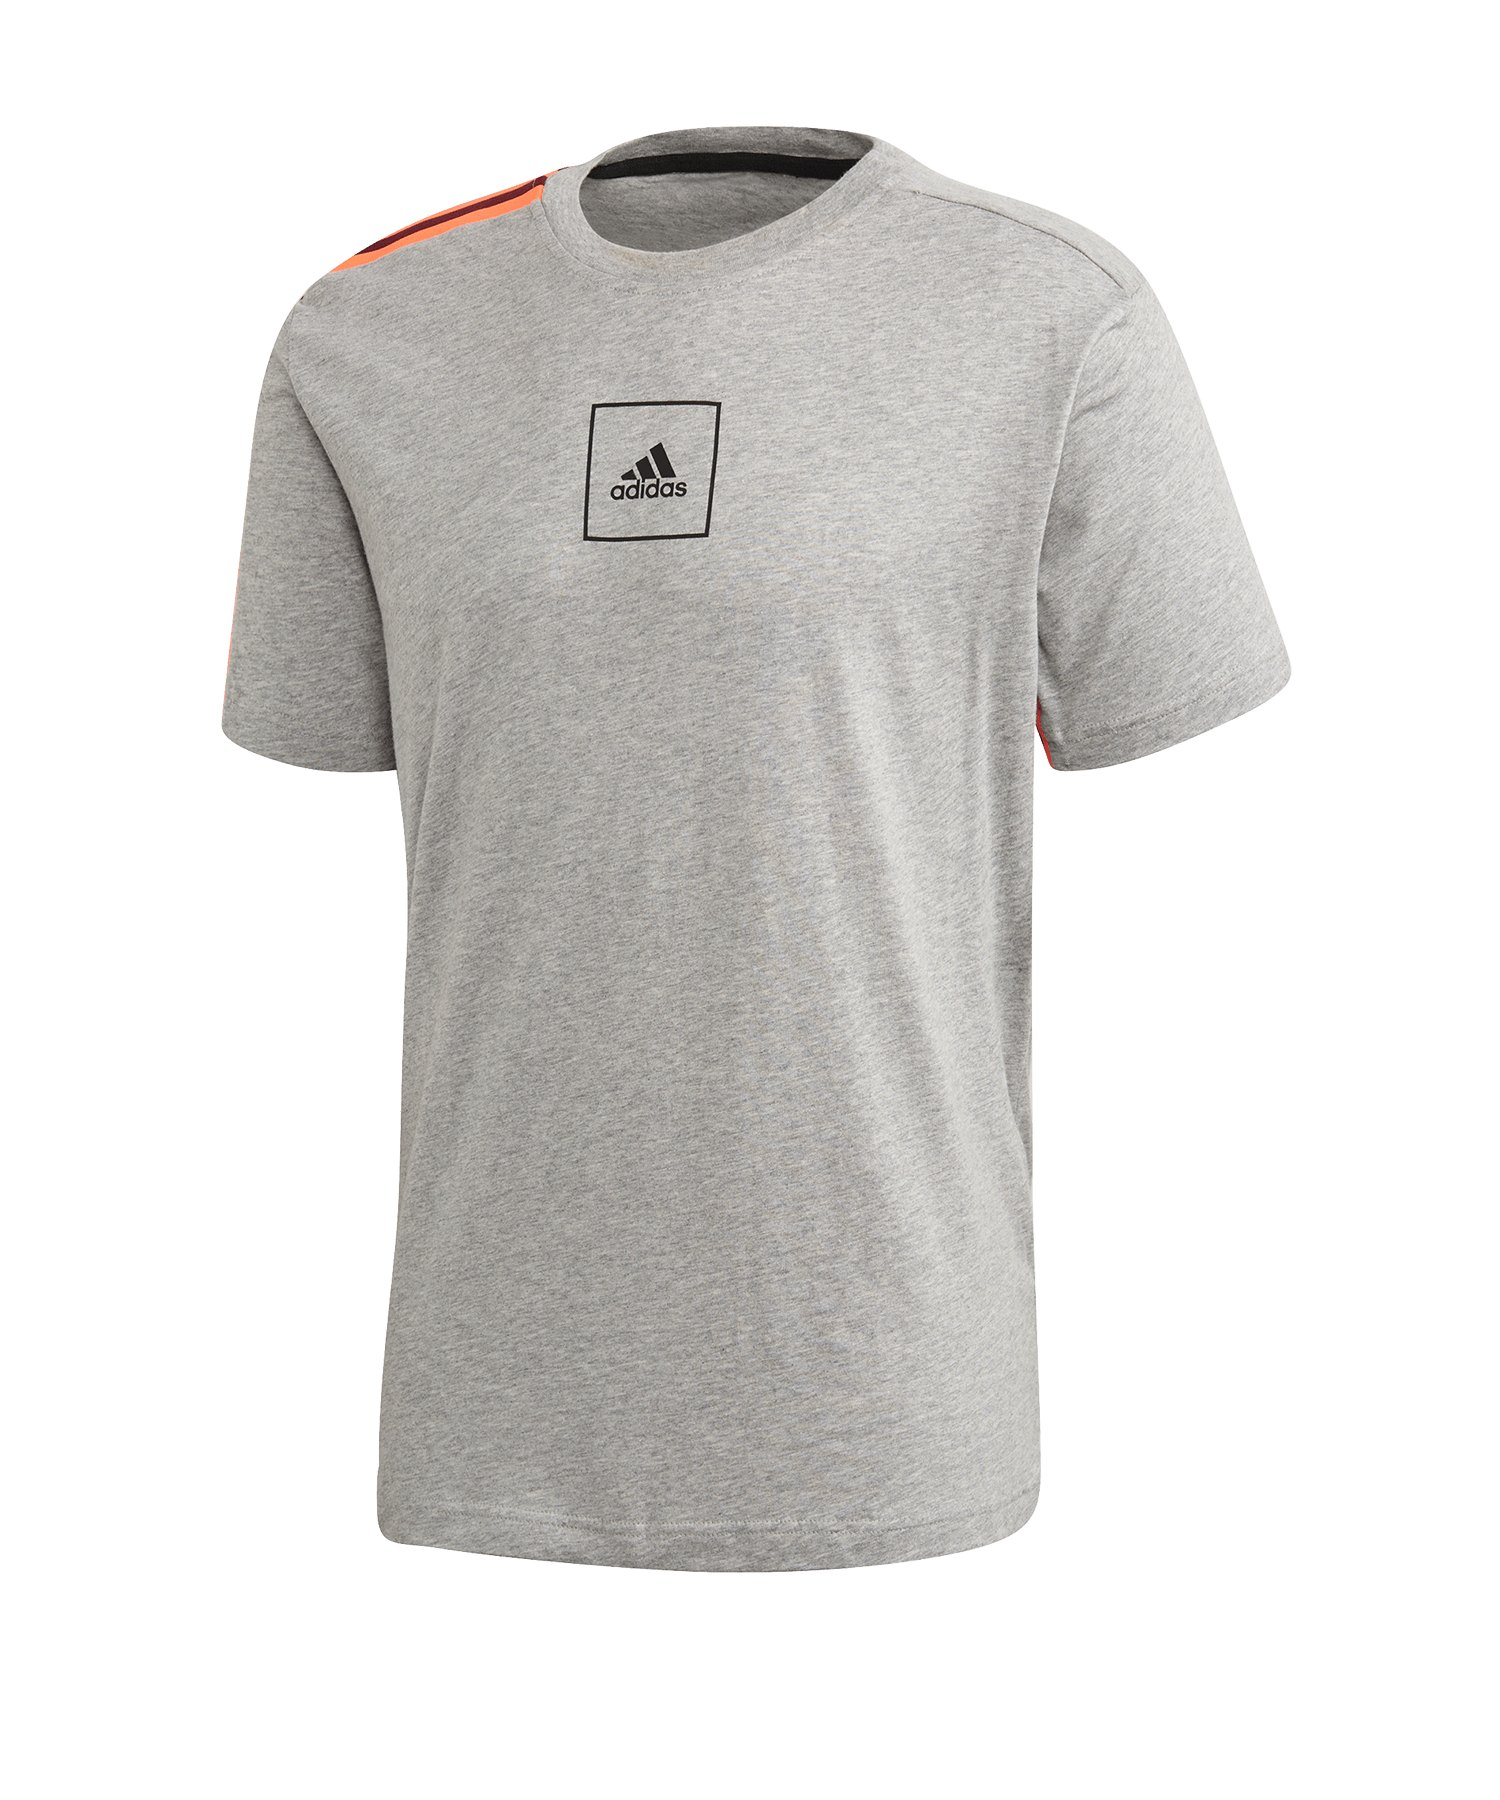 adidas Tape Tee T-Shirt 3 Stripes Grau - grau